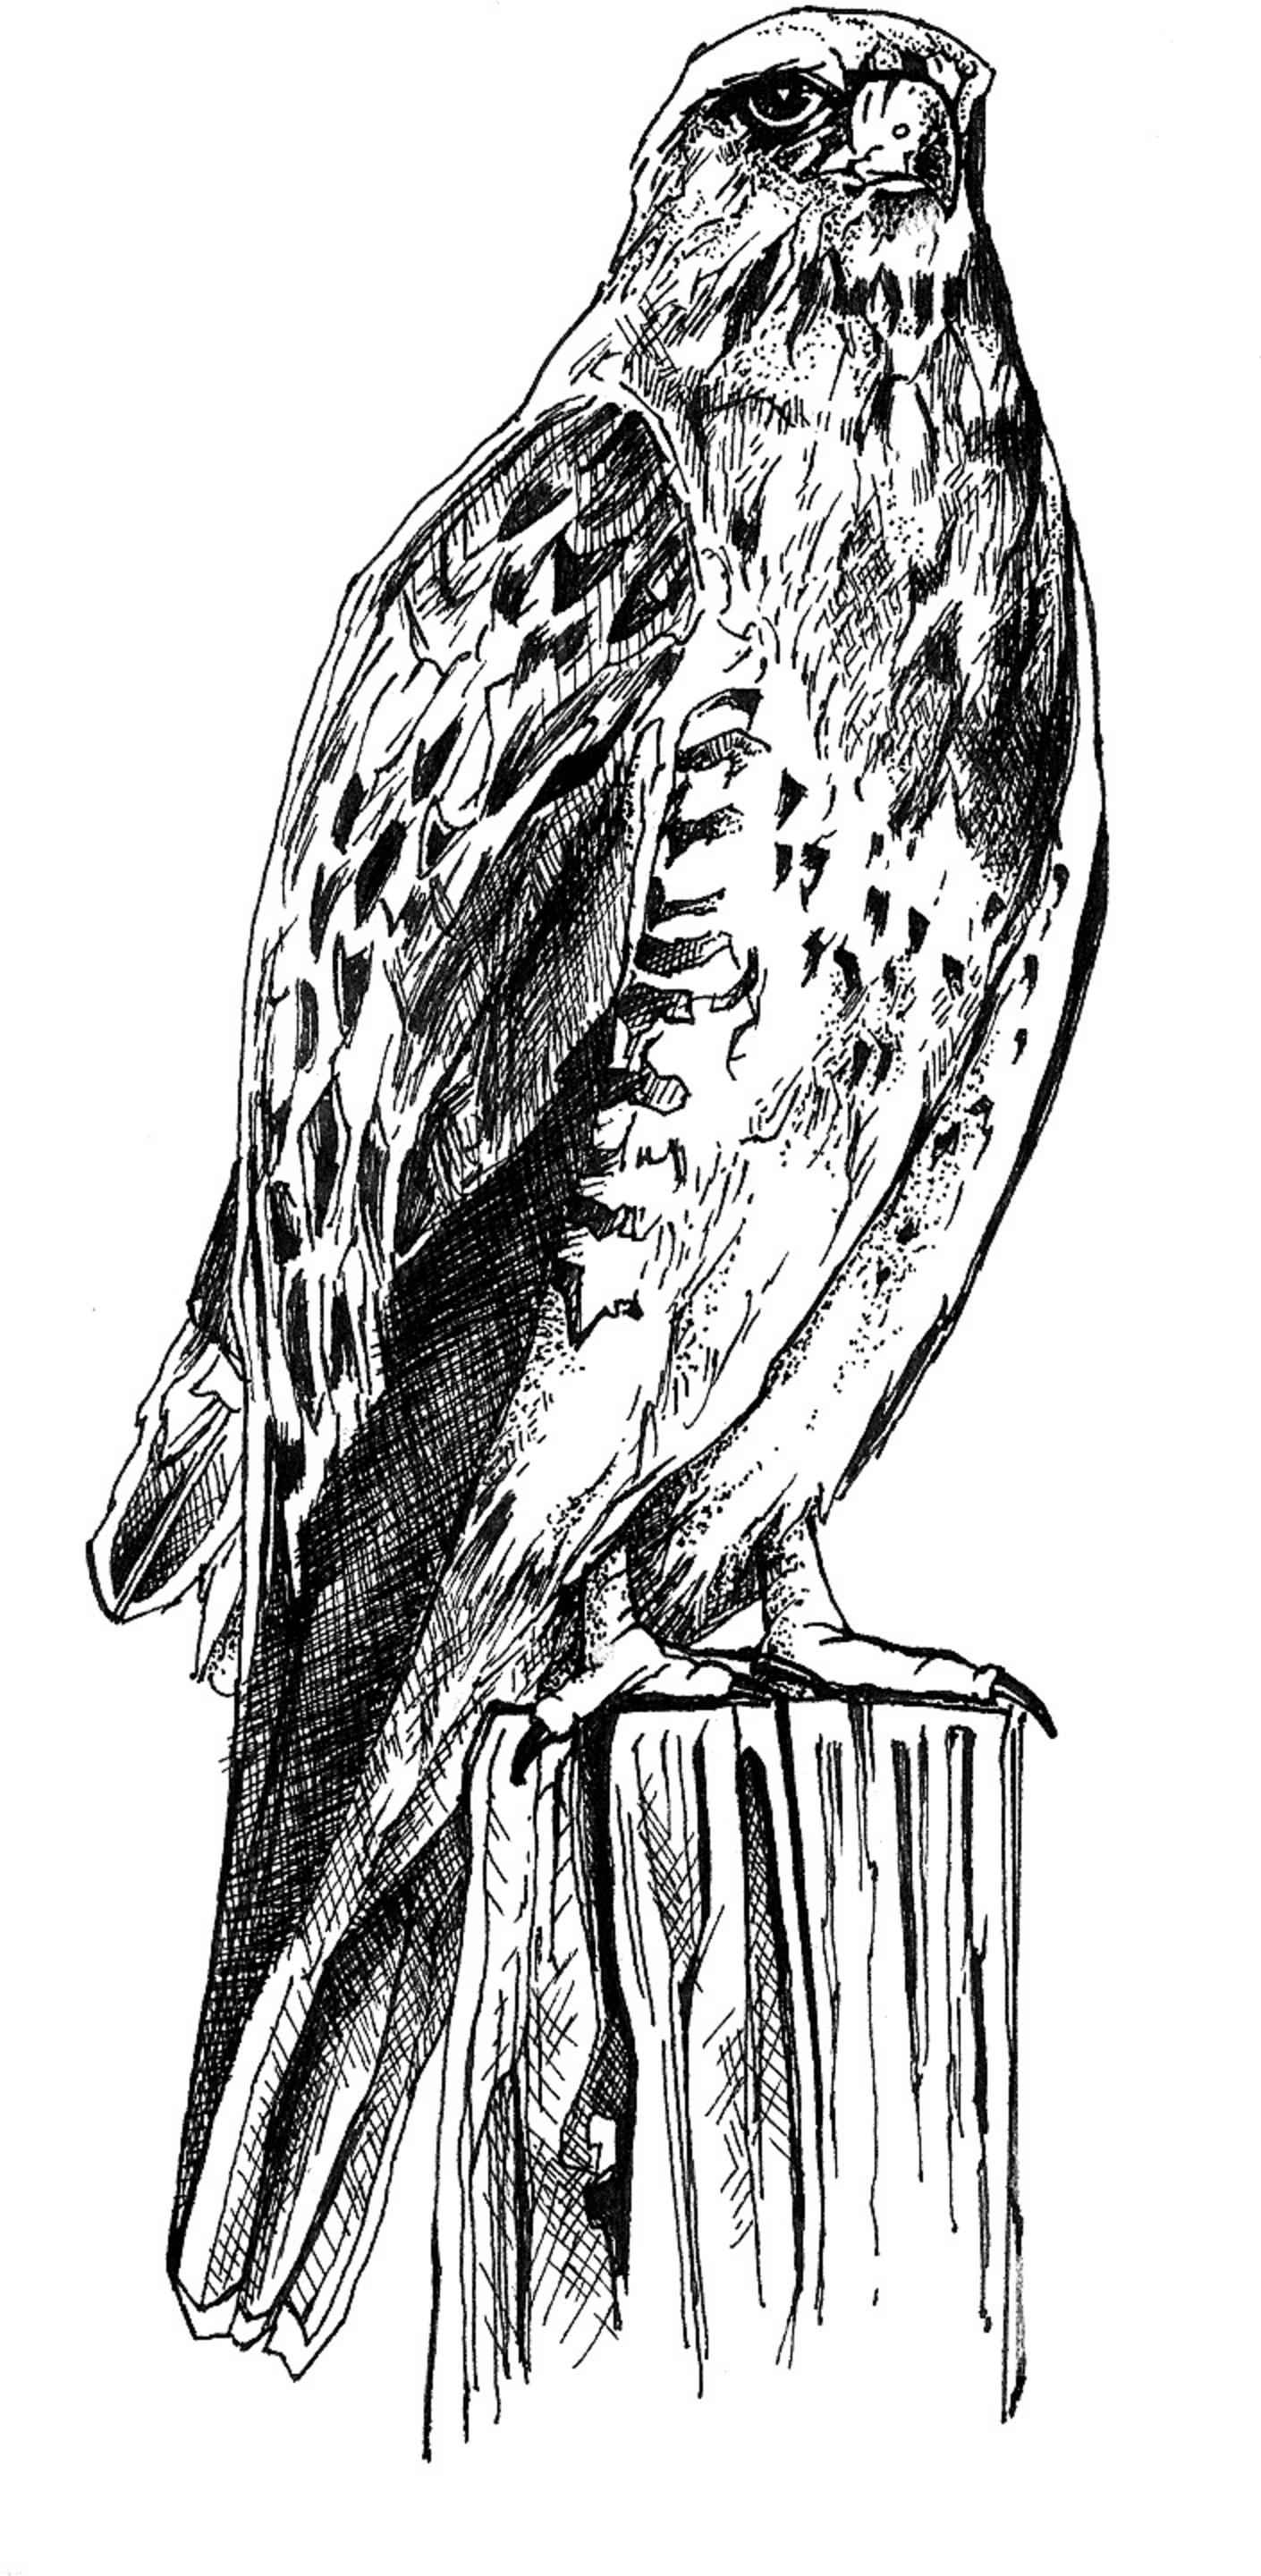 file black and white line art drawing of bird body jpg wikimedia